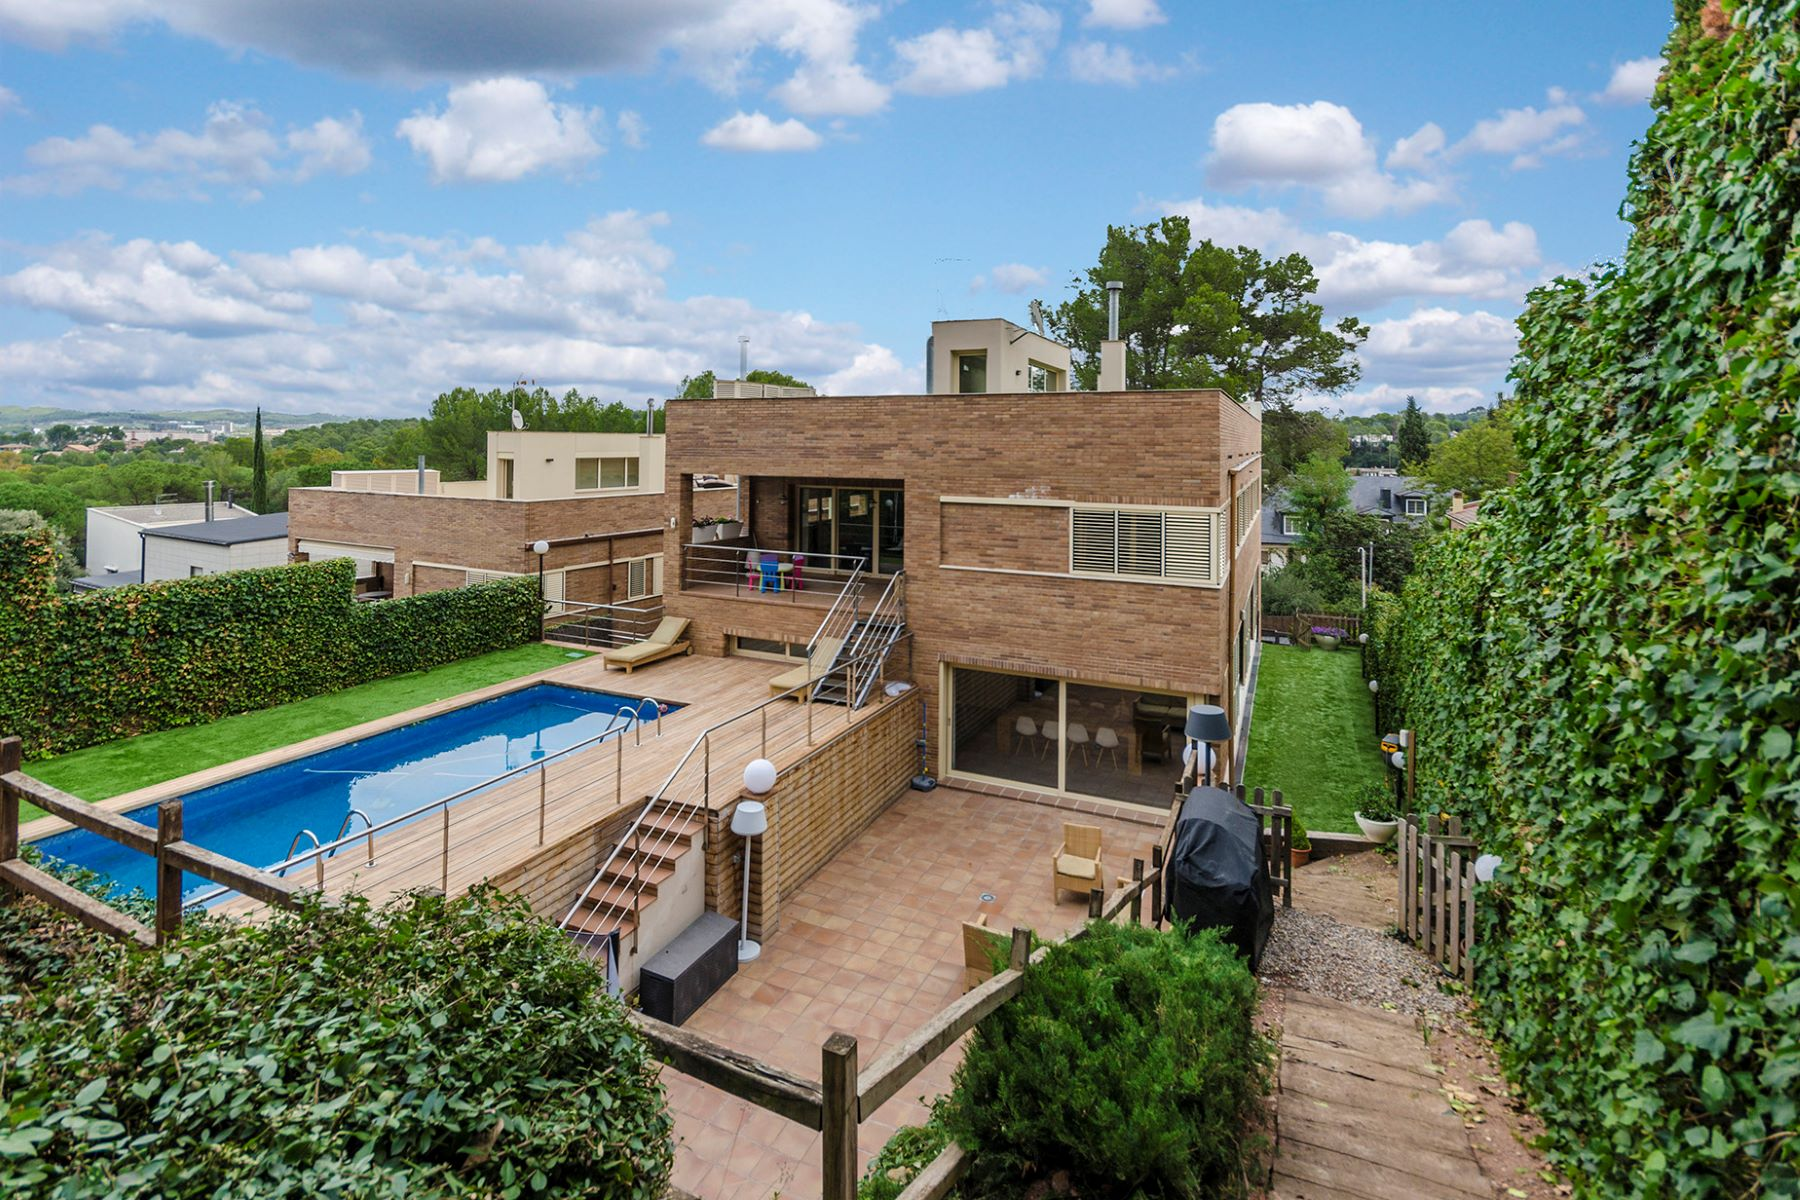 Single Family Home for Sale at Modern sunny villa with swimming pool in Valldoreix Sant Cugat Del Valles, Barcelona, 08172 Spain